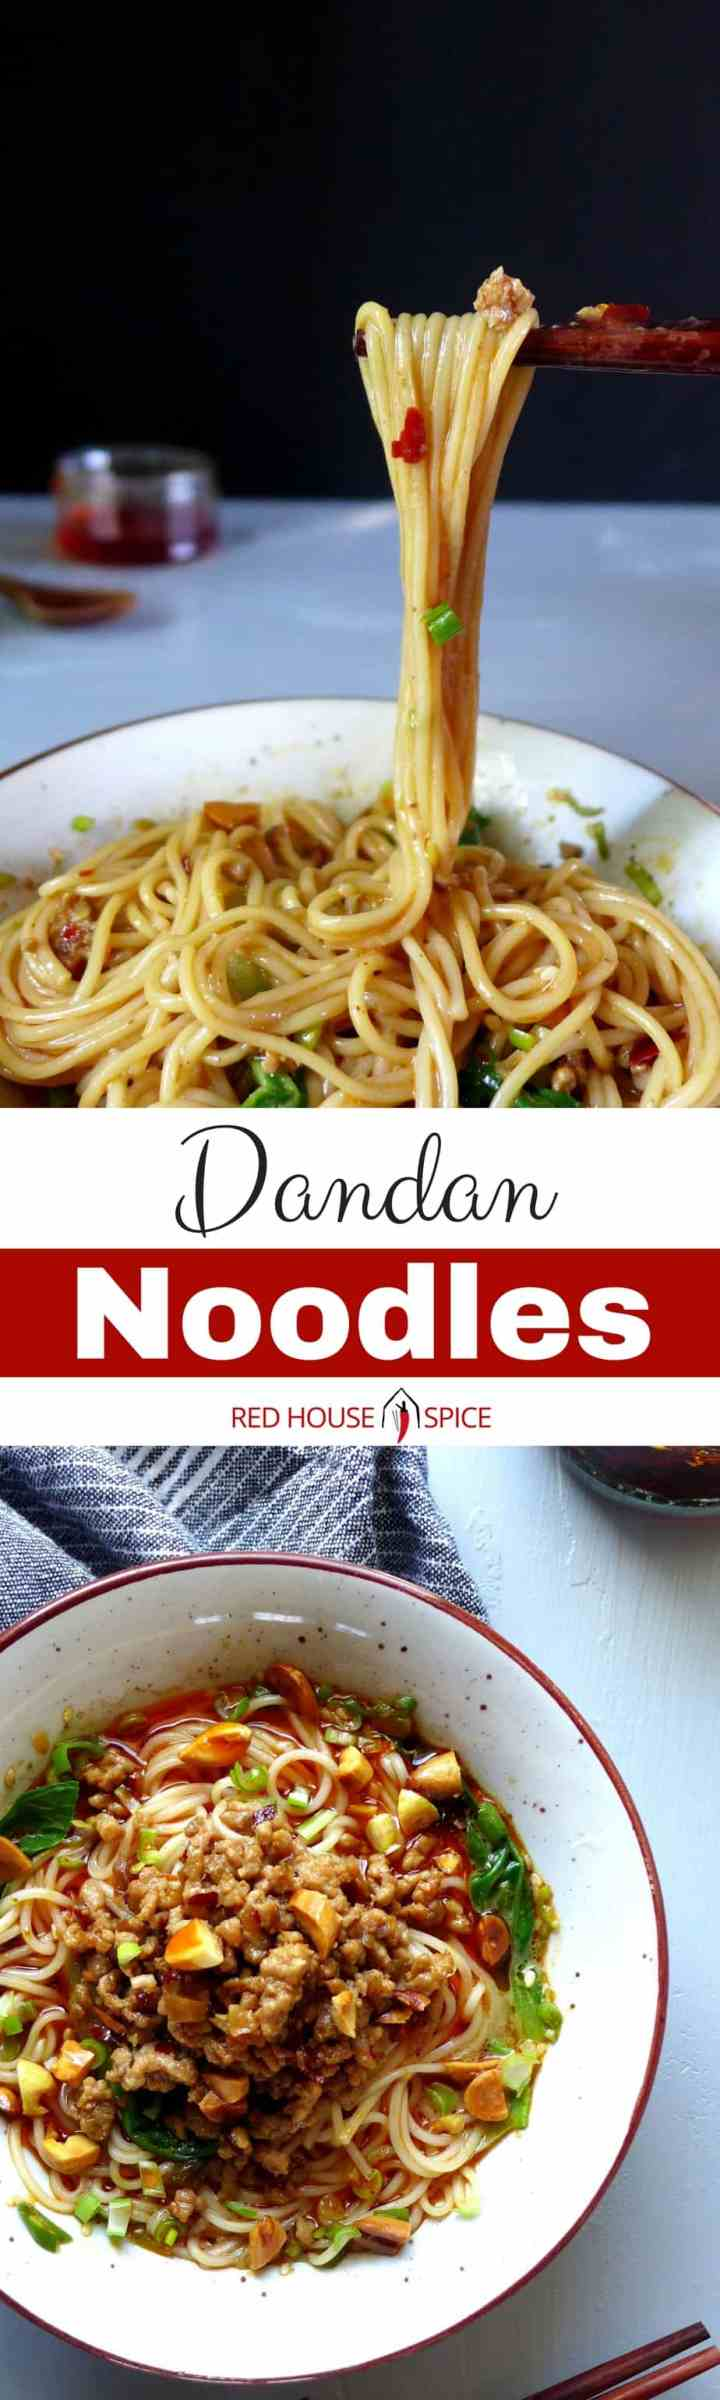 A classic Chinese noodle dish. Down-to-earth, affordable, and super tasty. Make Dan Dan noodles in 20 minutes and enjoy this street food wonder.